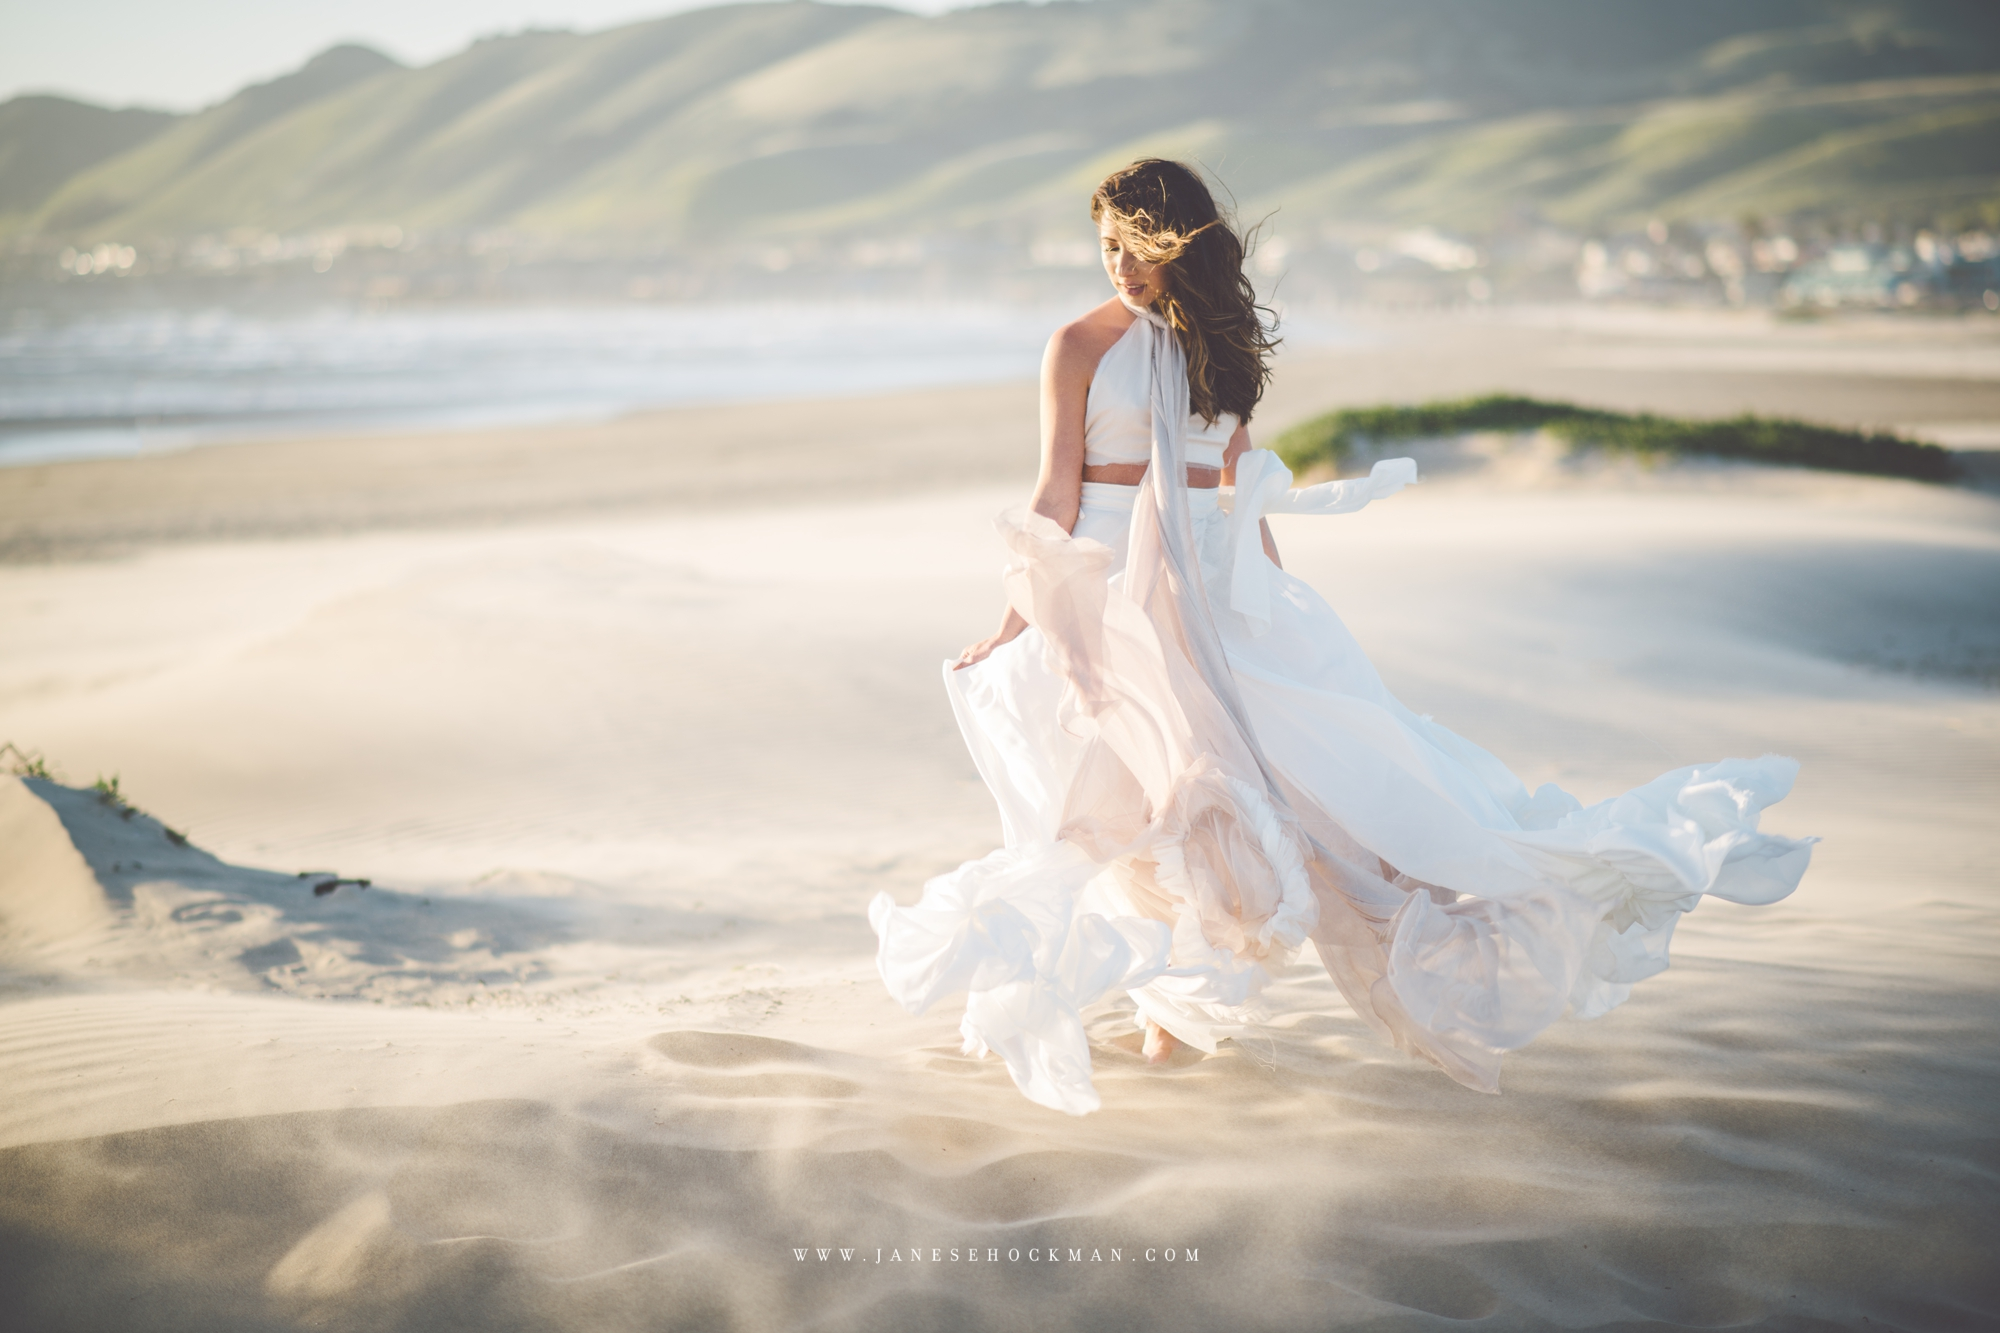 Grover Beach Sand Dunes-Janese Hockman Photography-High School Senior Portraits-Creative Shoot 5.jpg